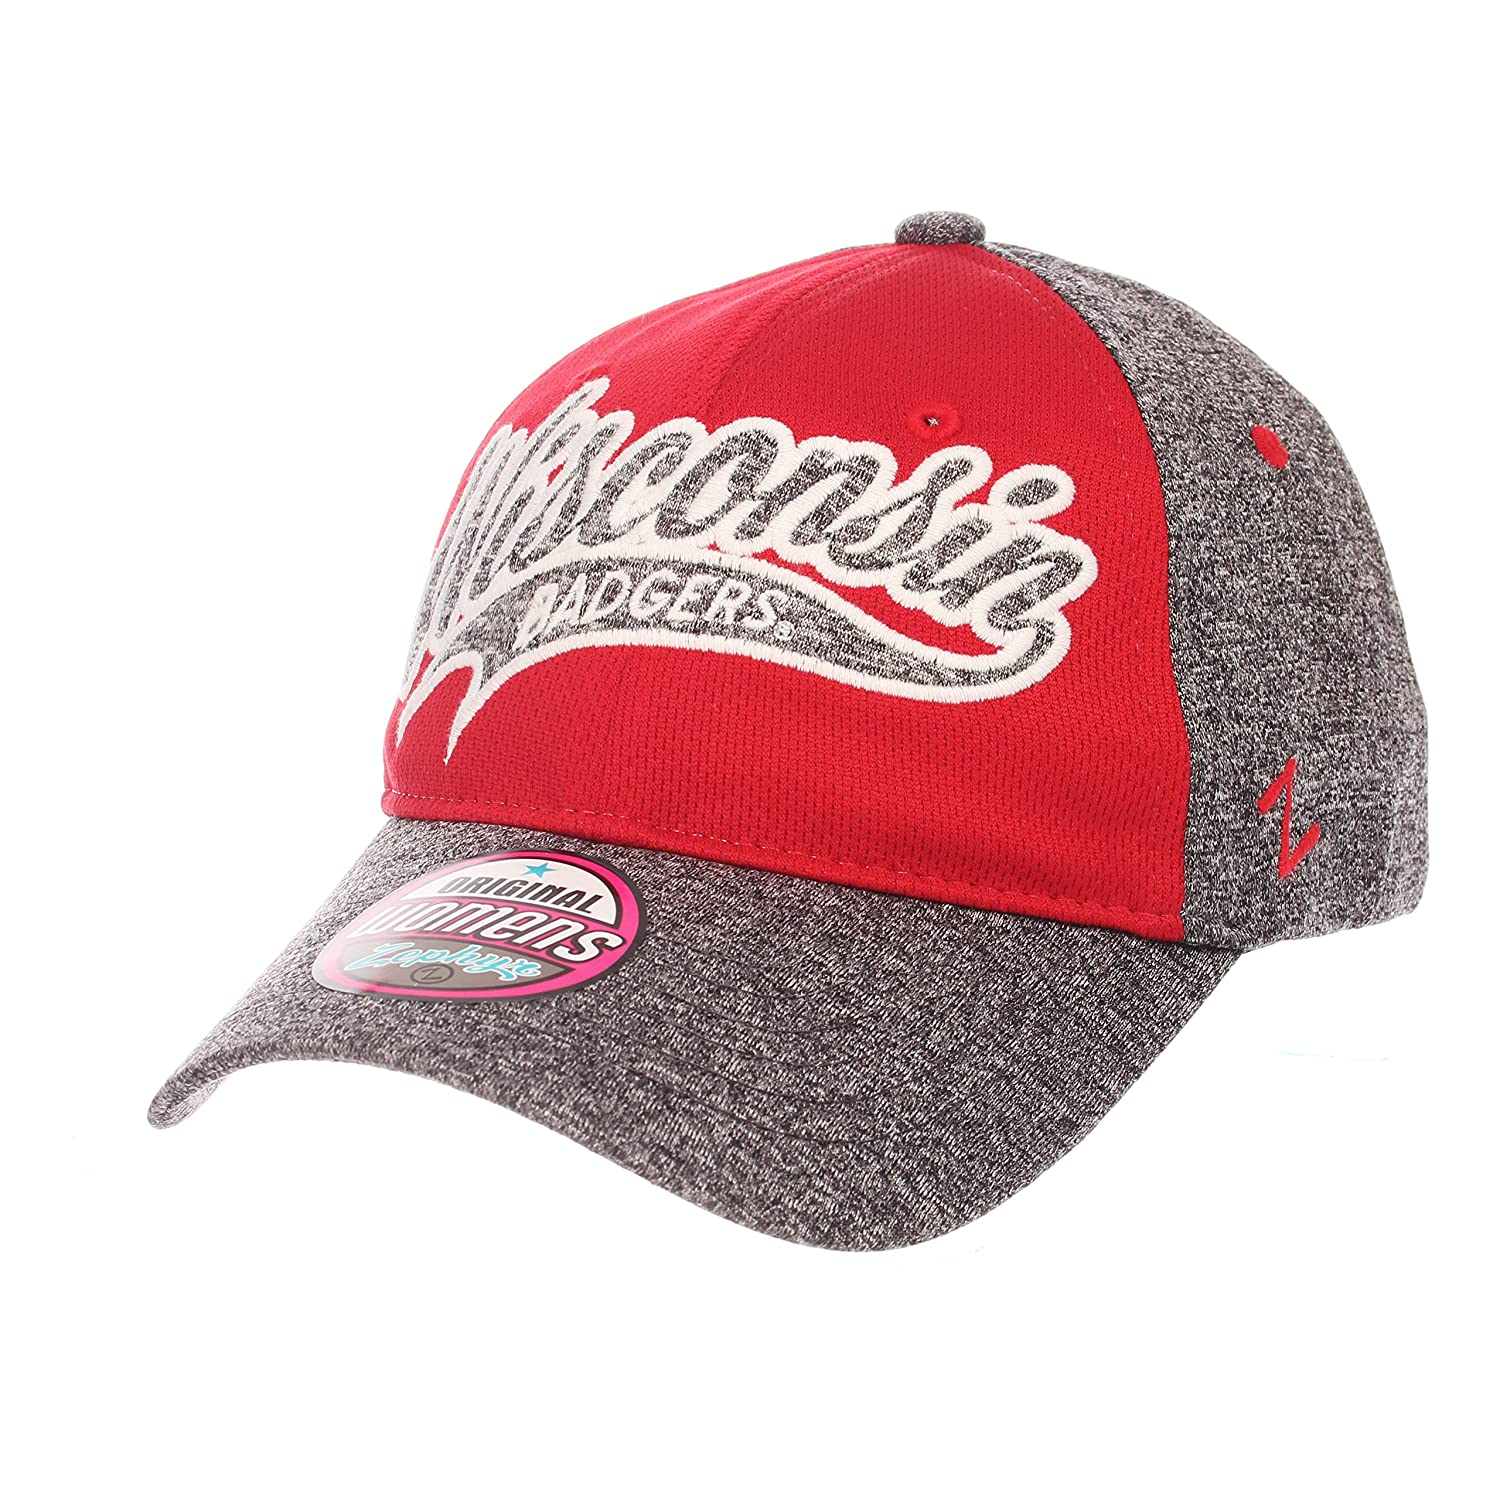 Shimano Cap//Hat-Very Soft and warming material//Very Comfortable//Novelty